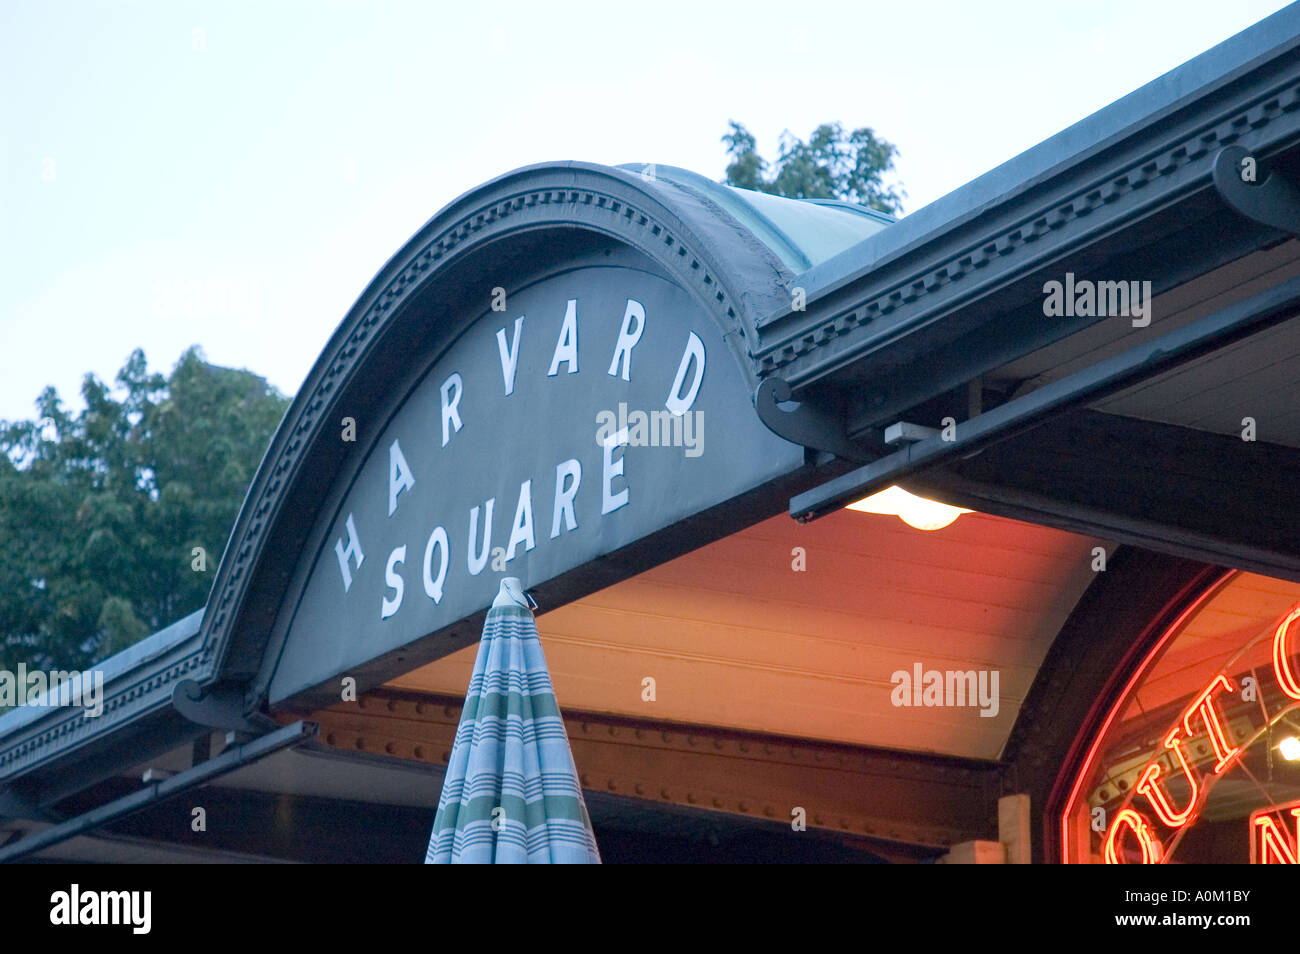 Harvard Square sign at Out of Town News, Harvard, Cambridge, Massachusetts - Stock Image